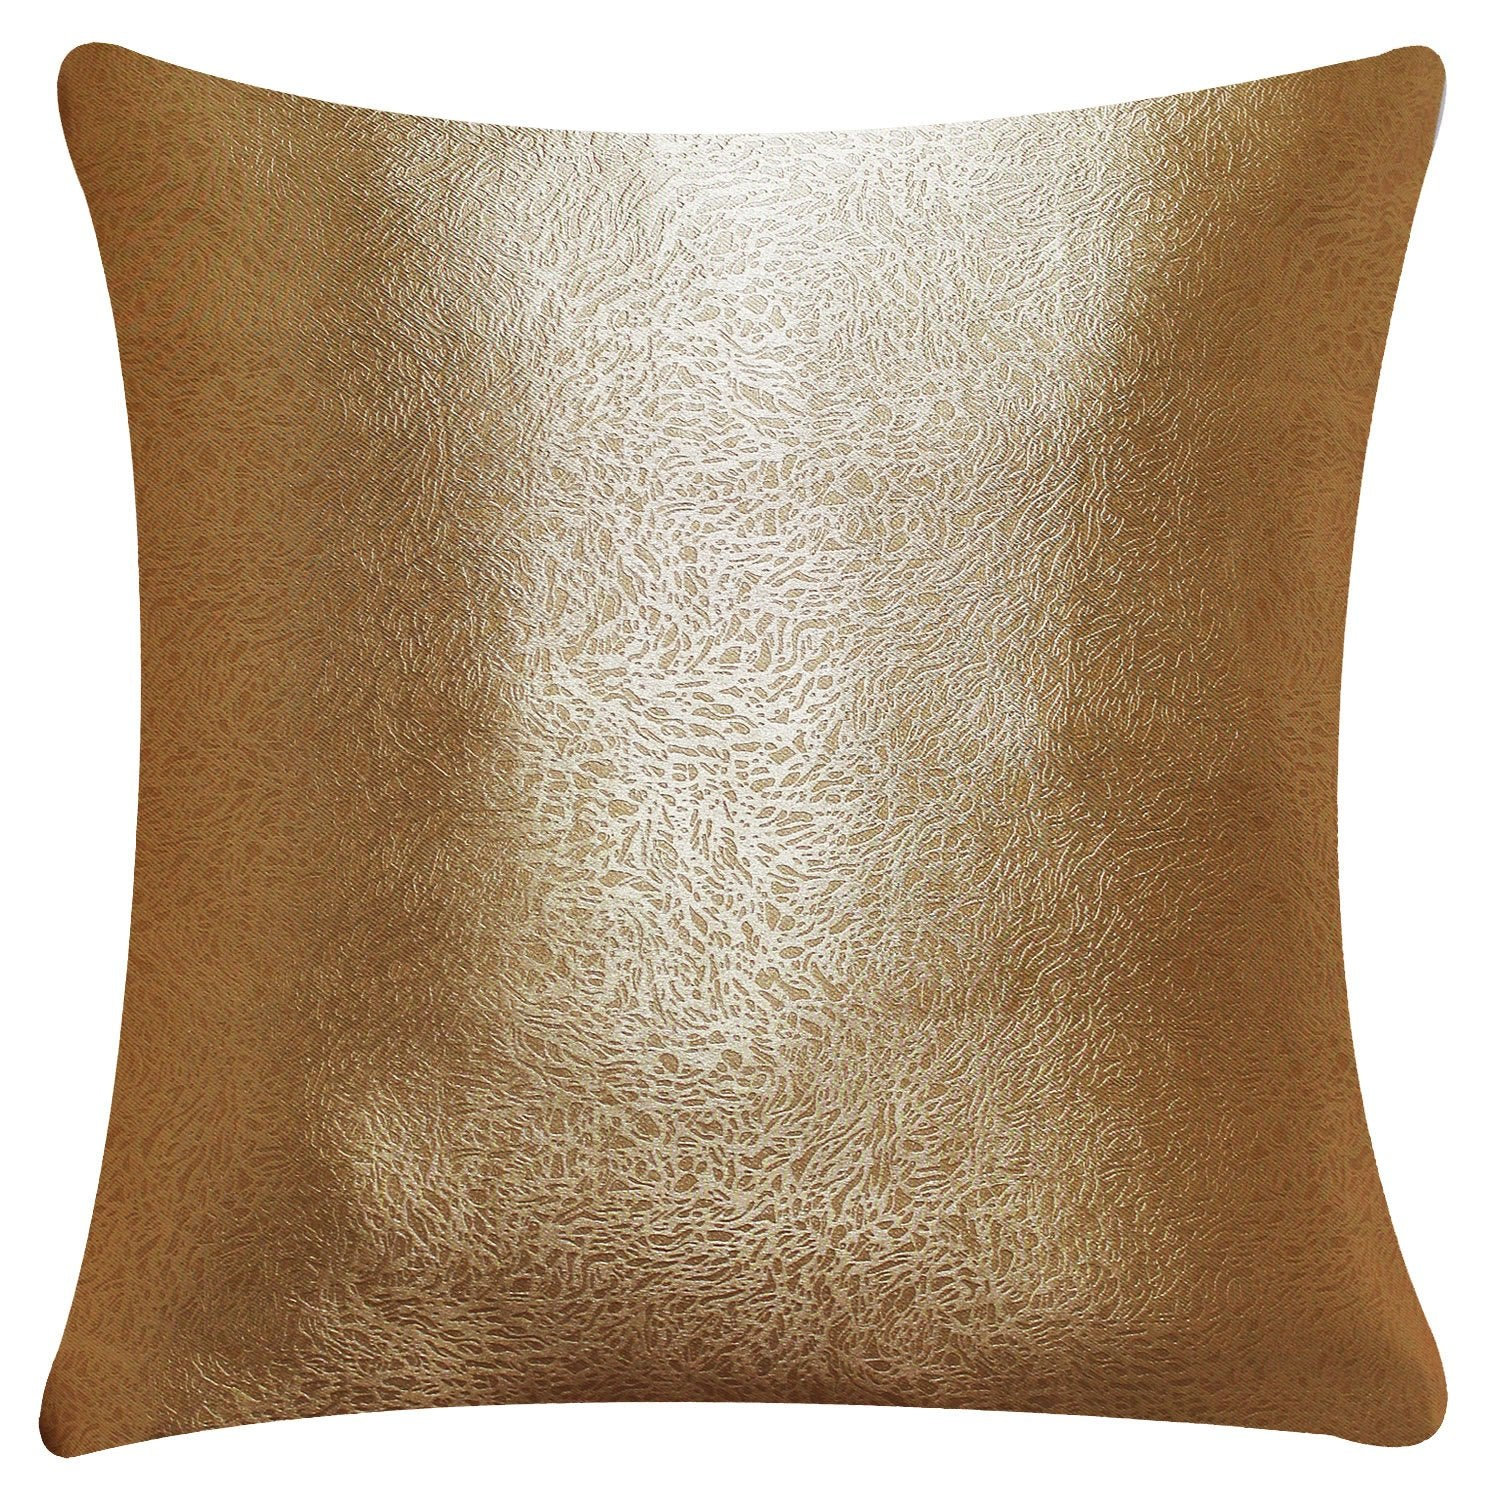 Aandy Top Golden Cushion Cover Decorative Square Throw Pillow Case Cover 1 Set of 2 Piece - Anady Top Space Design